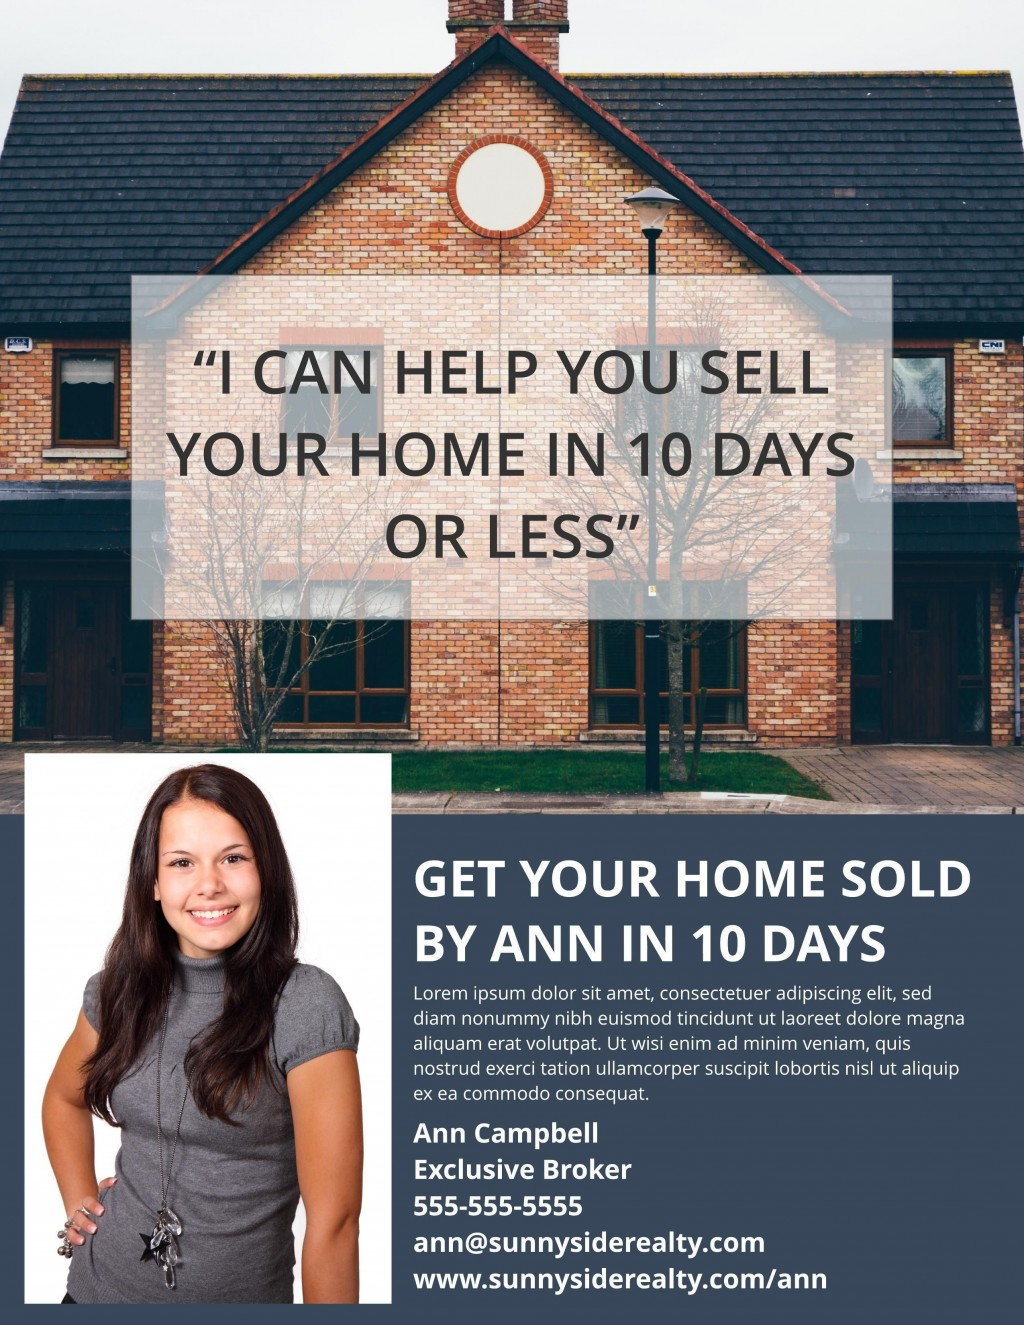 002 Impressive Real Estate Marketing Flyer Template Free Picture Large